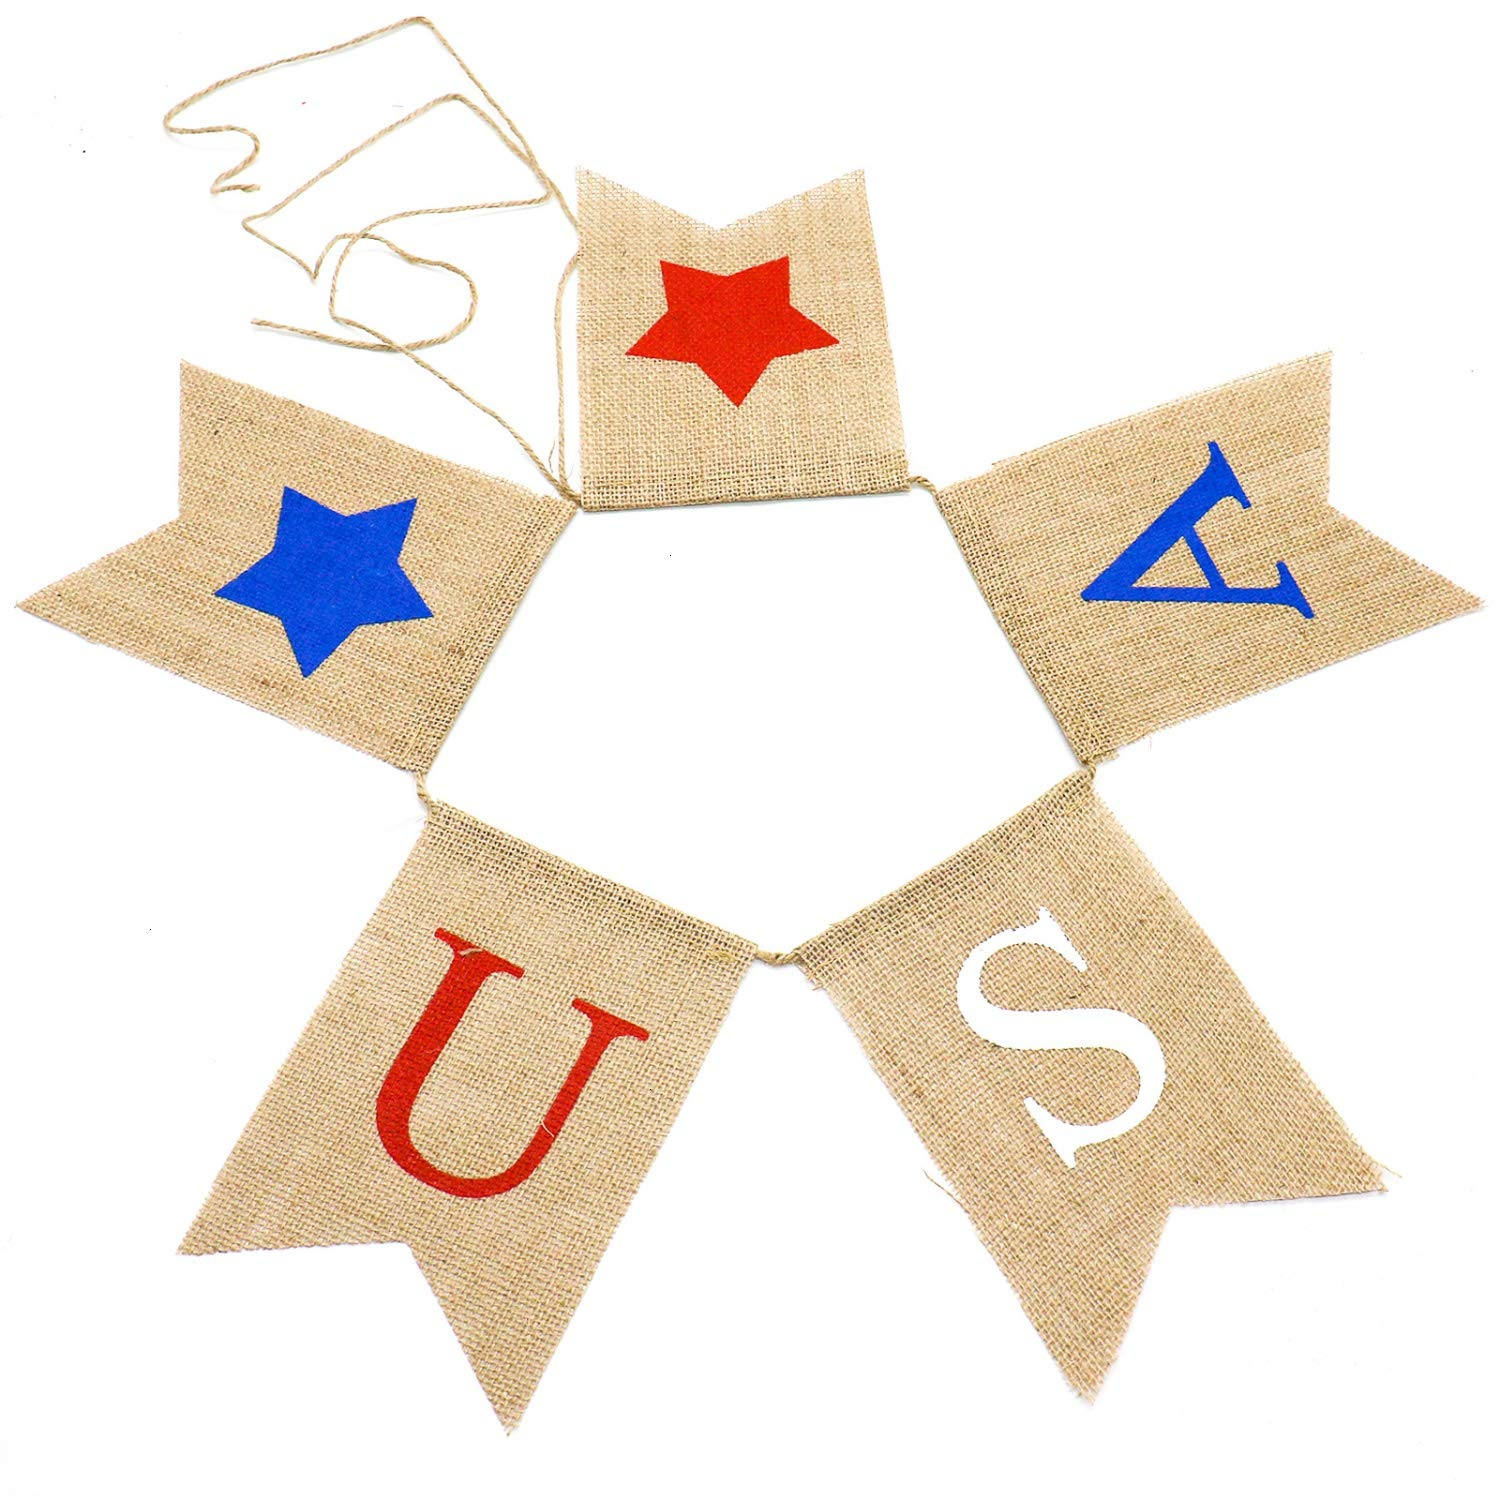 Buorsa USA Burlap Banner Decor for Independence Day Memorial Day Veterans Day